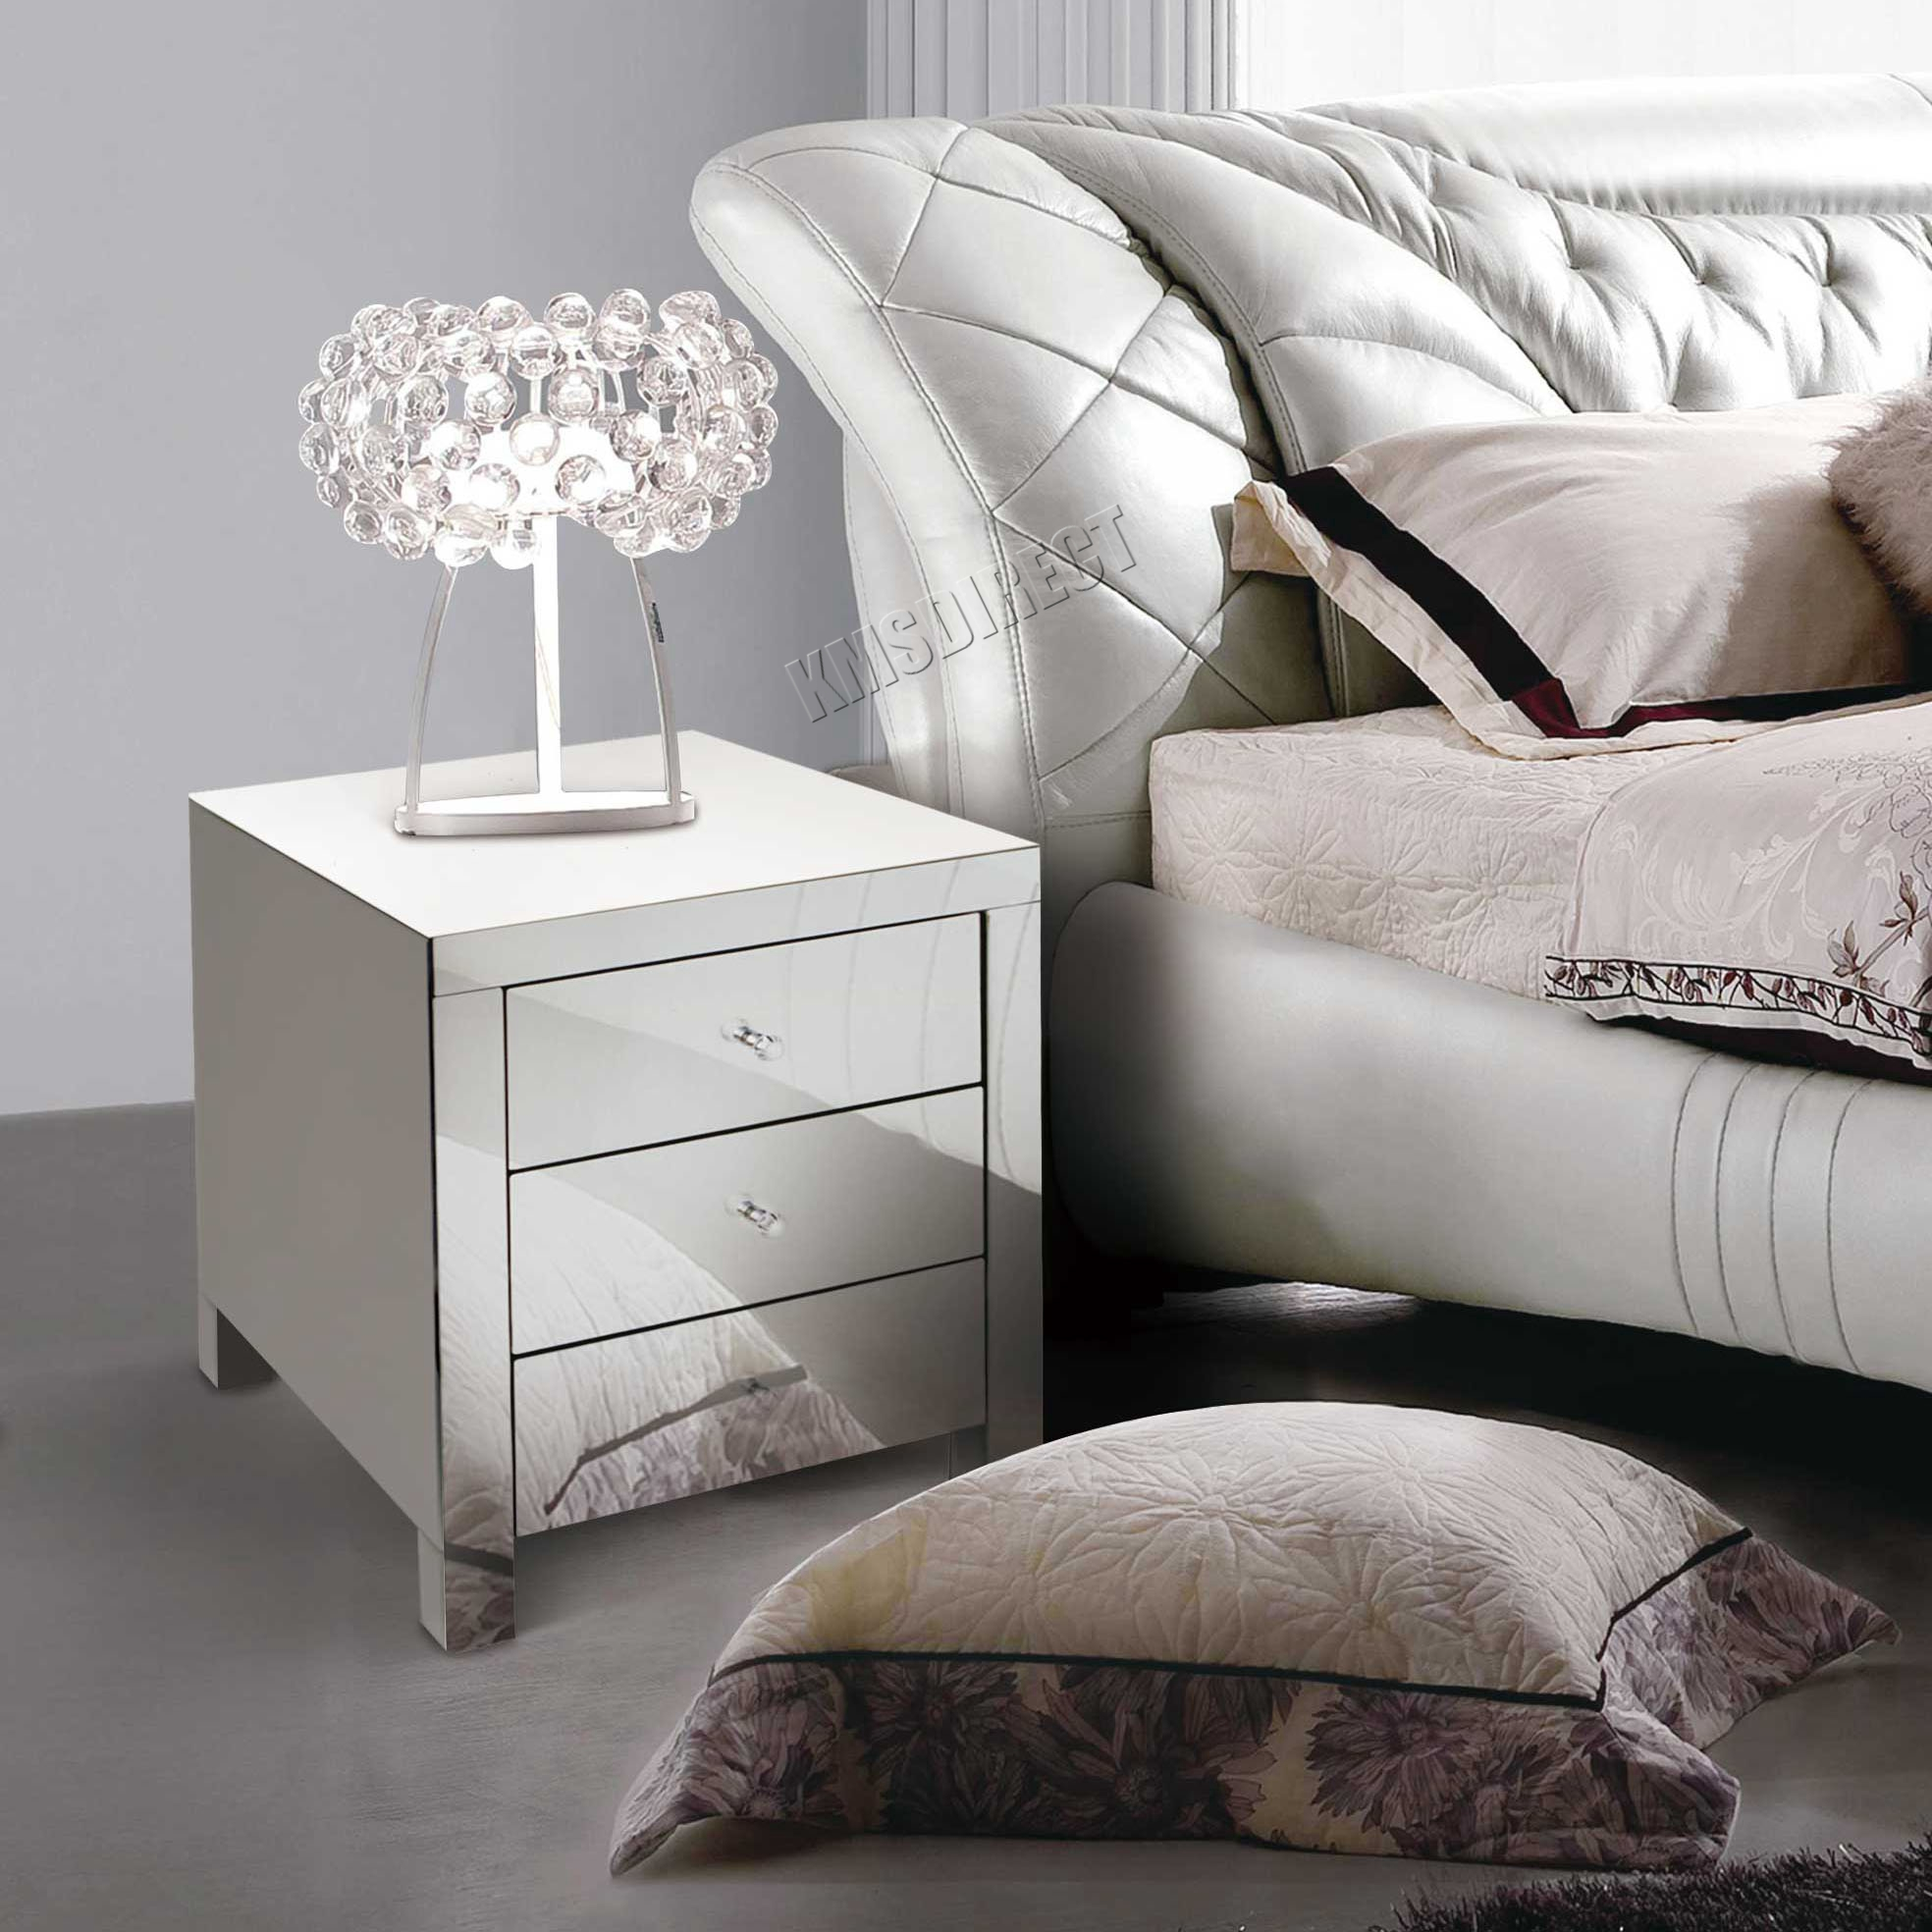 Mirrored Furniture Bedroom Foxhunter Mirrored Furniture Glass Bedside Cabinet Table With